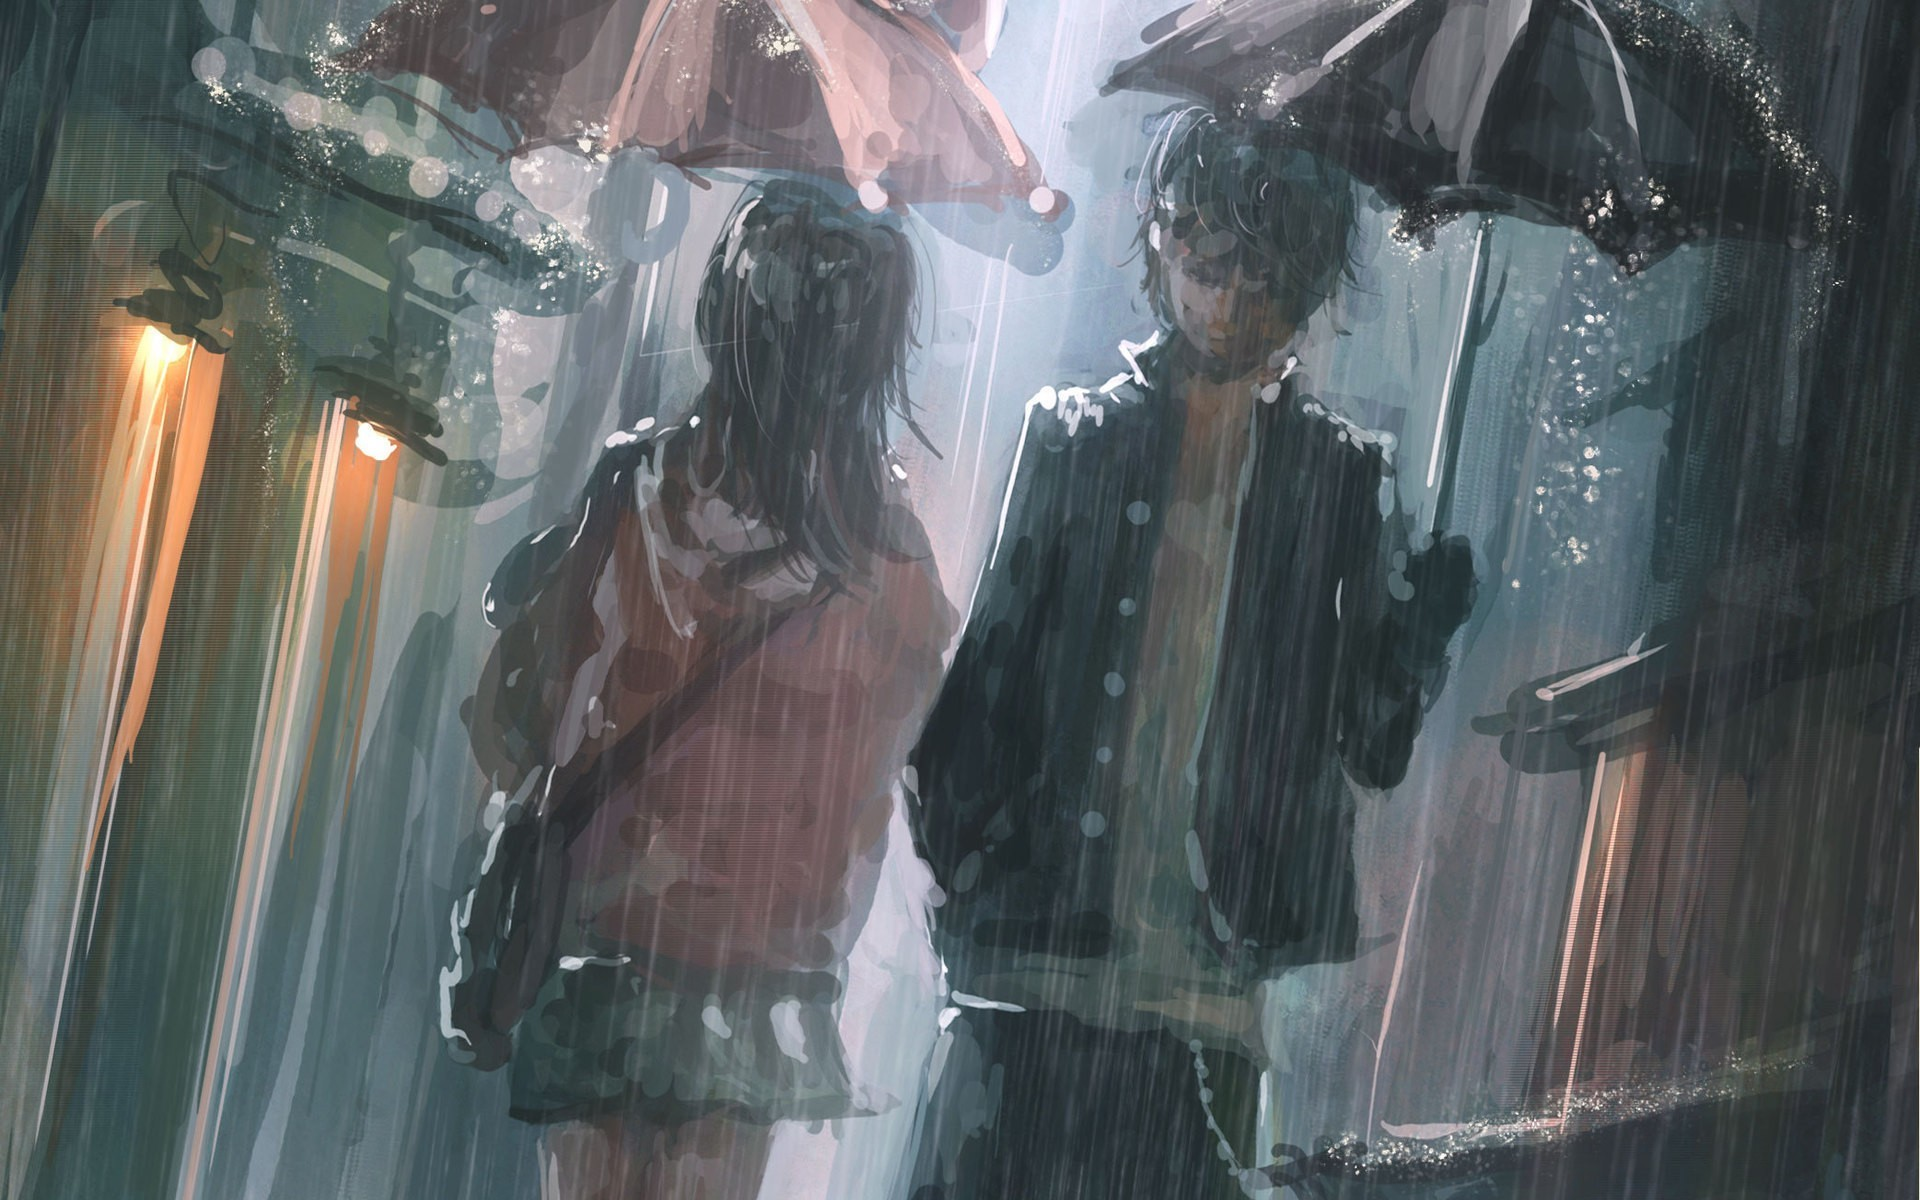 rain artwork Umbrellas HD Wallpaper